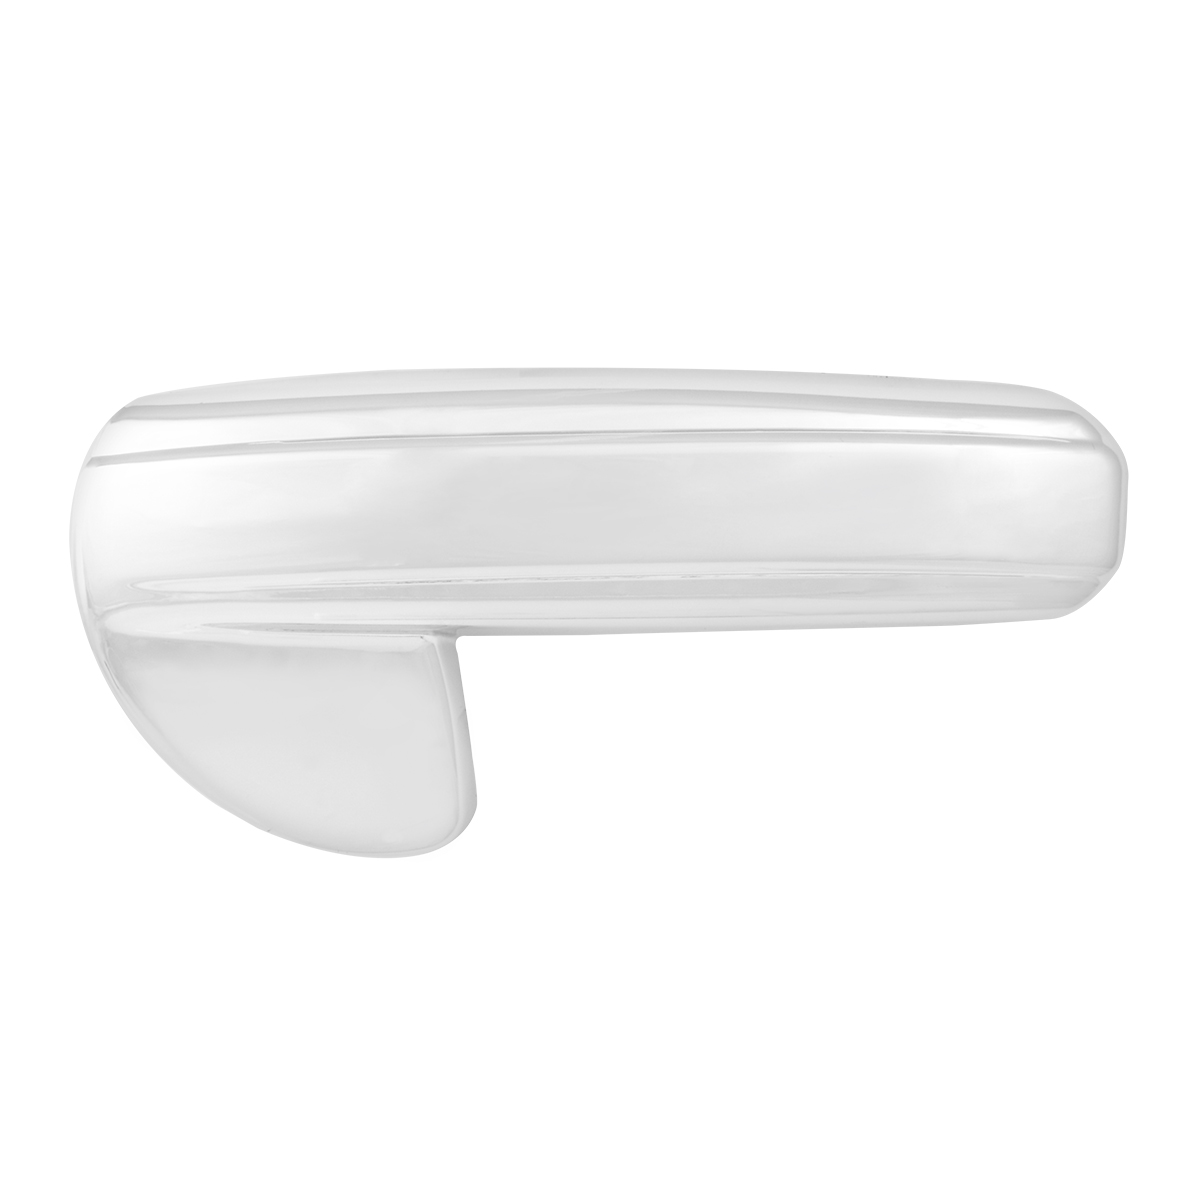 67763 Freightliner Cascadia Inside Door Handle Cover